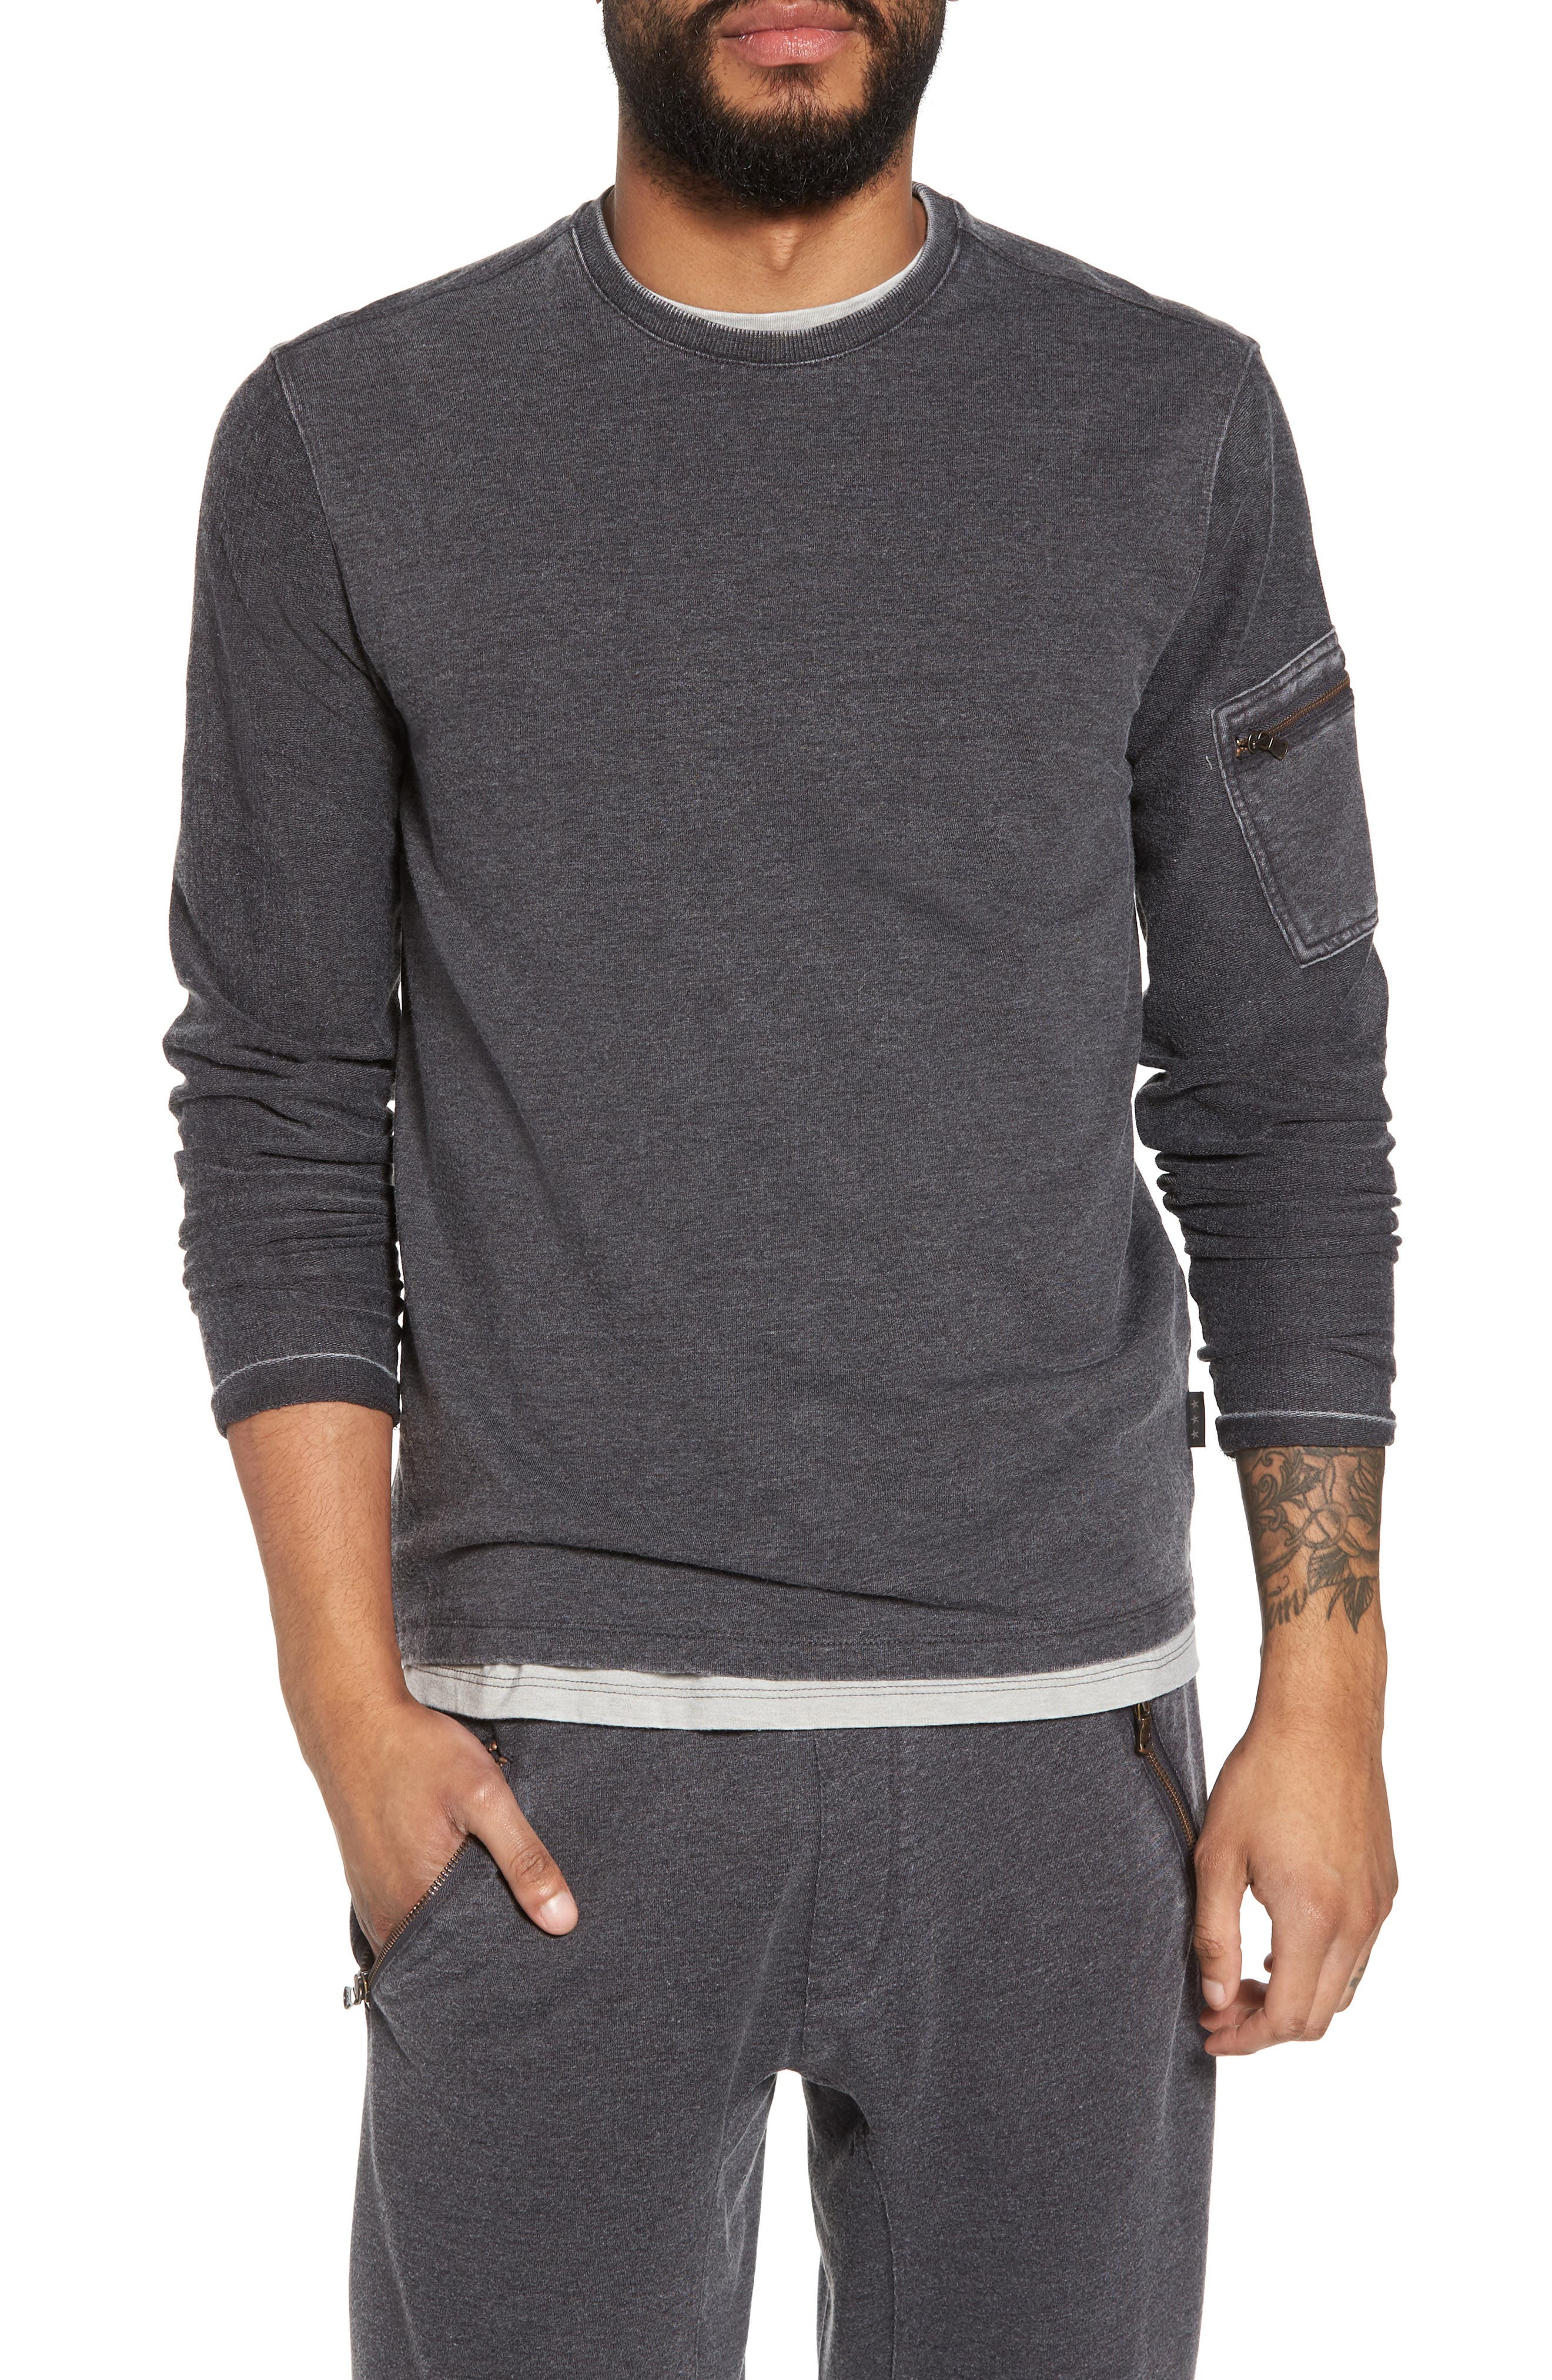 French Terry Crewneck Sweater,                             Main thumbnail 1, color,                             032